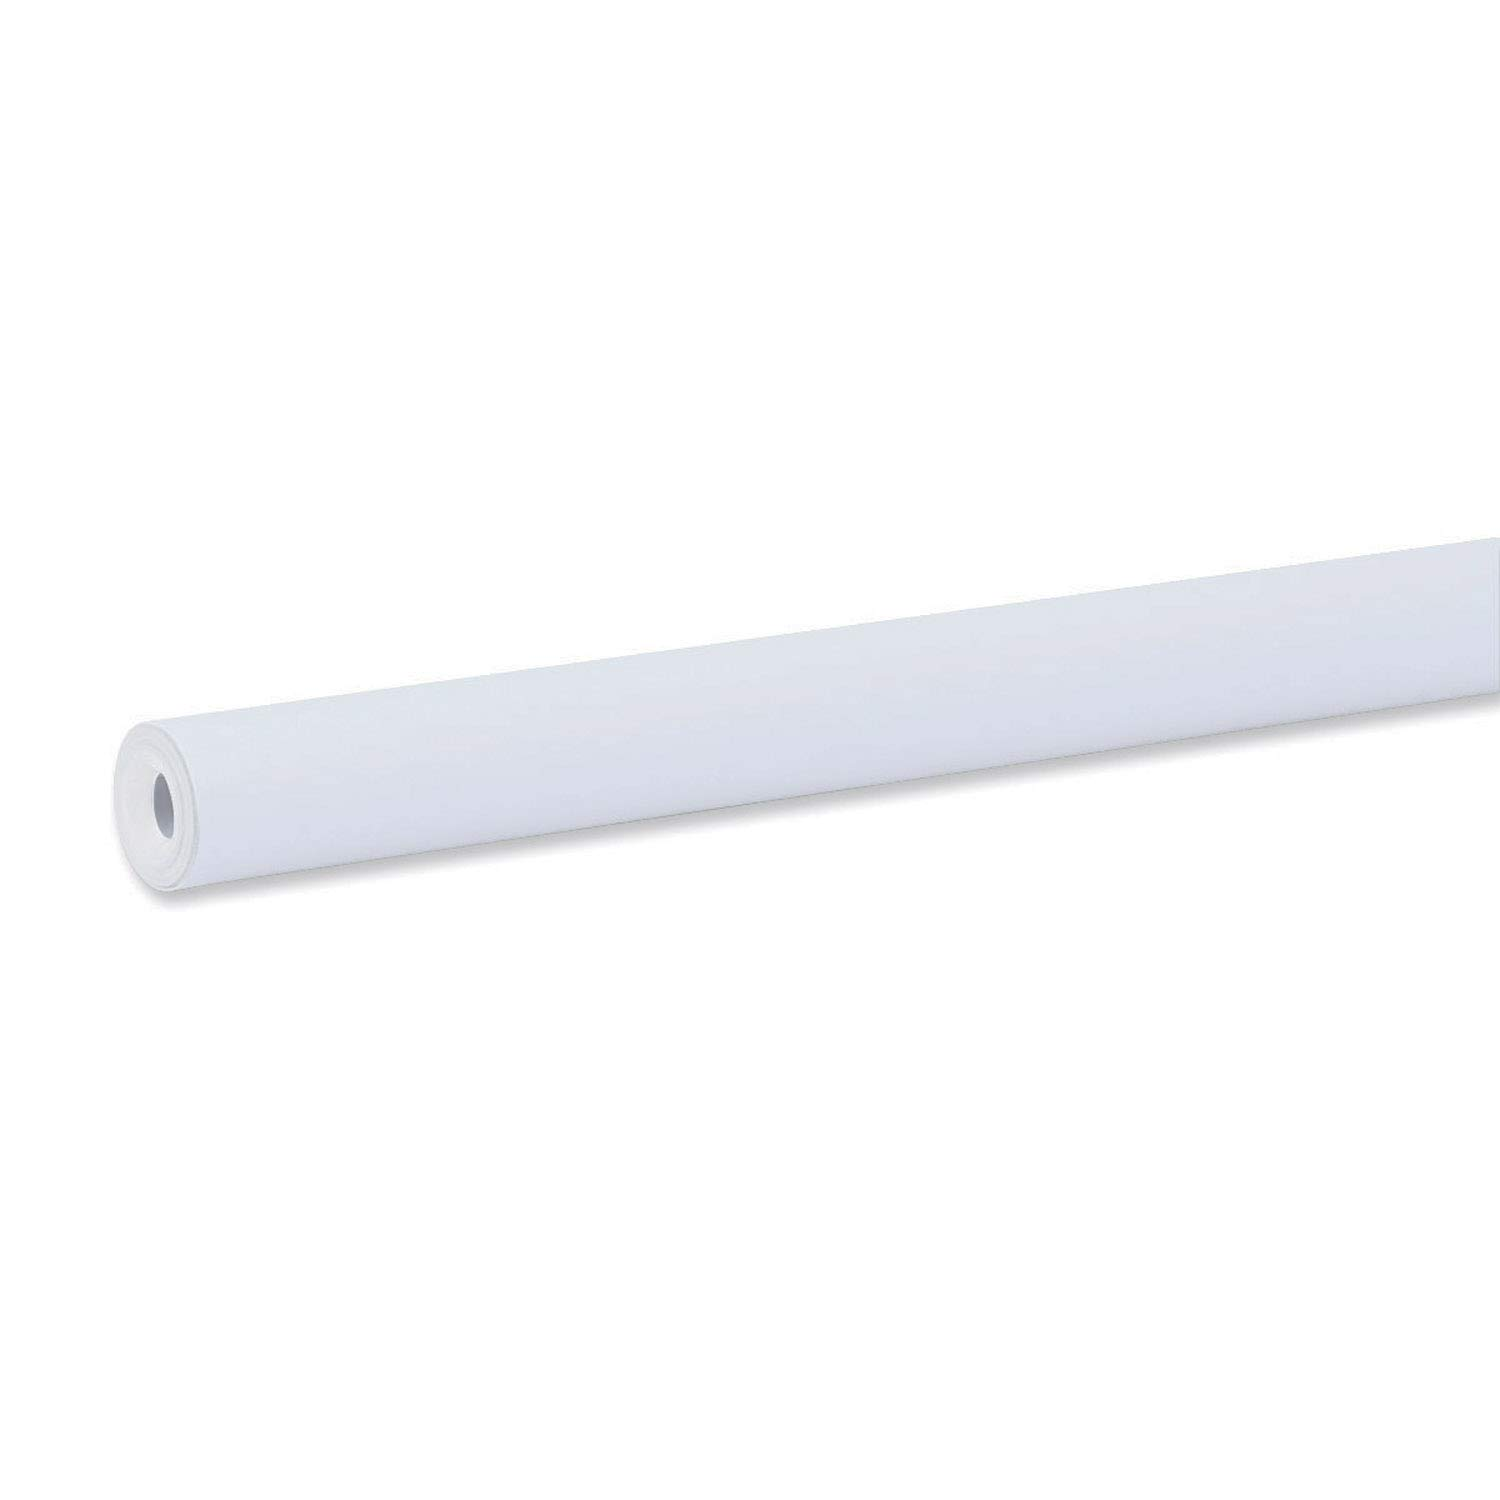 Fadeless PAC57015 Bulletin Board Art Paper, White, 48'' x 50', 1 Roll by Pacon